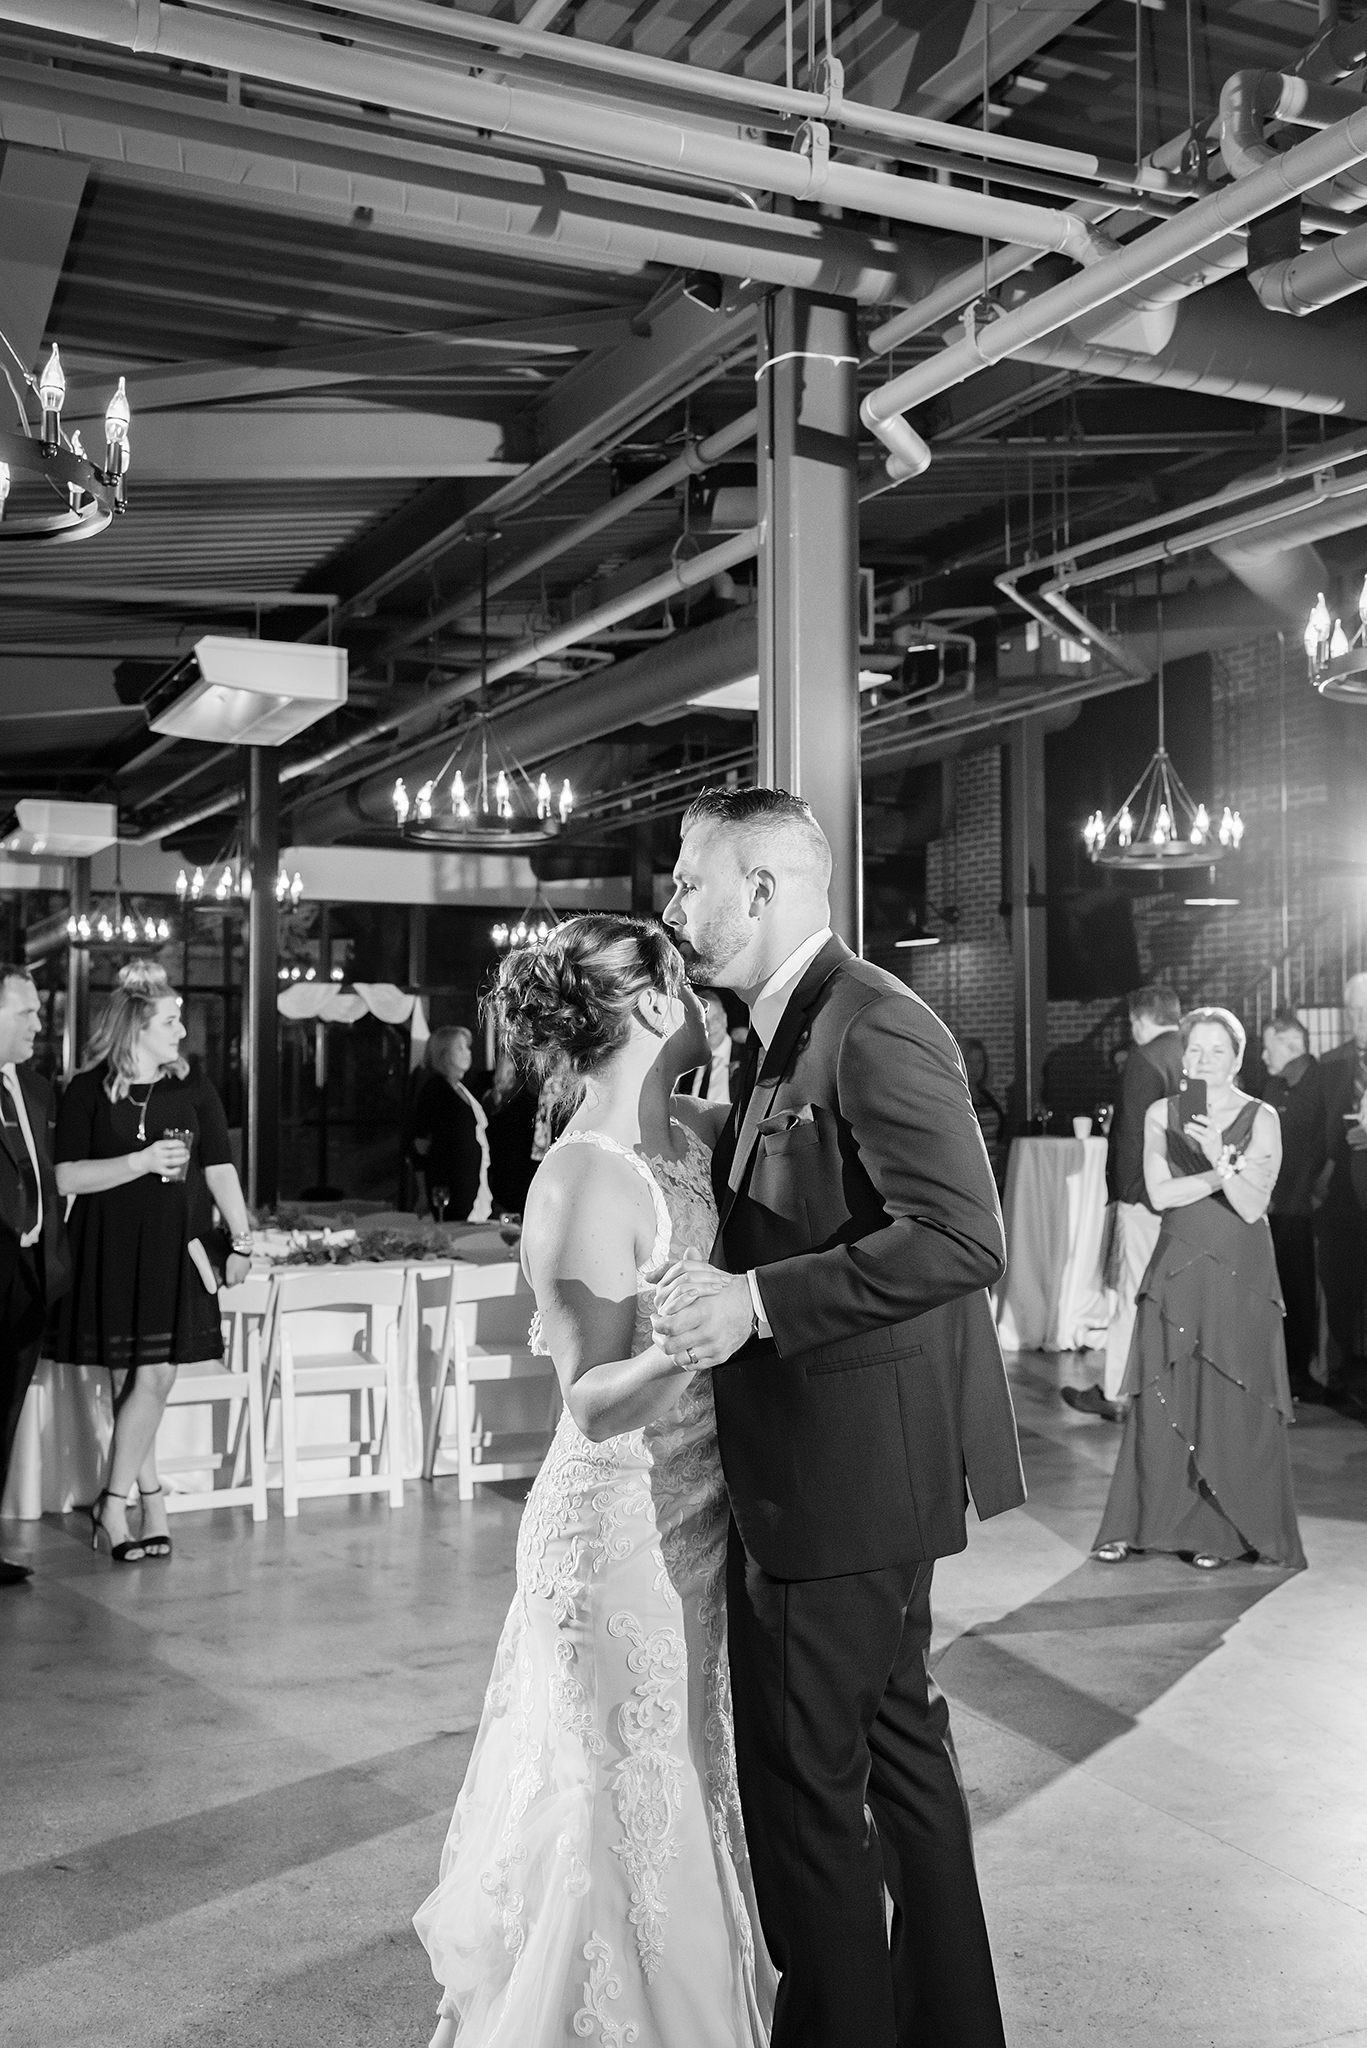 LINDSAY-ADKINS-PHOTOGRAPHY-MICHIGAN-WEDDING-PHOTOGRAPHER-FRANKENMUTH-BREWERY-WEDDING-MICHIGAN-BLOG-33